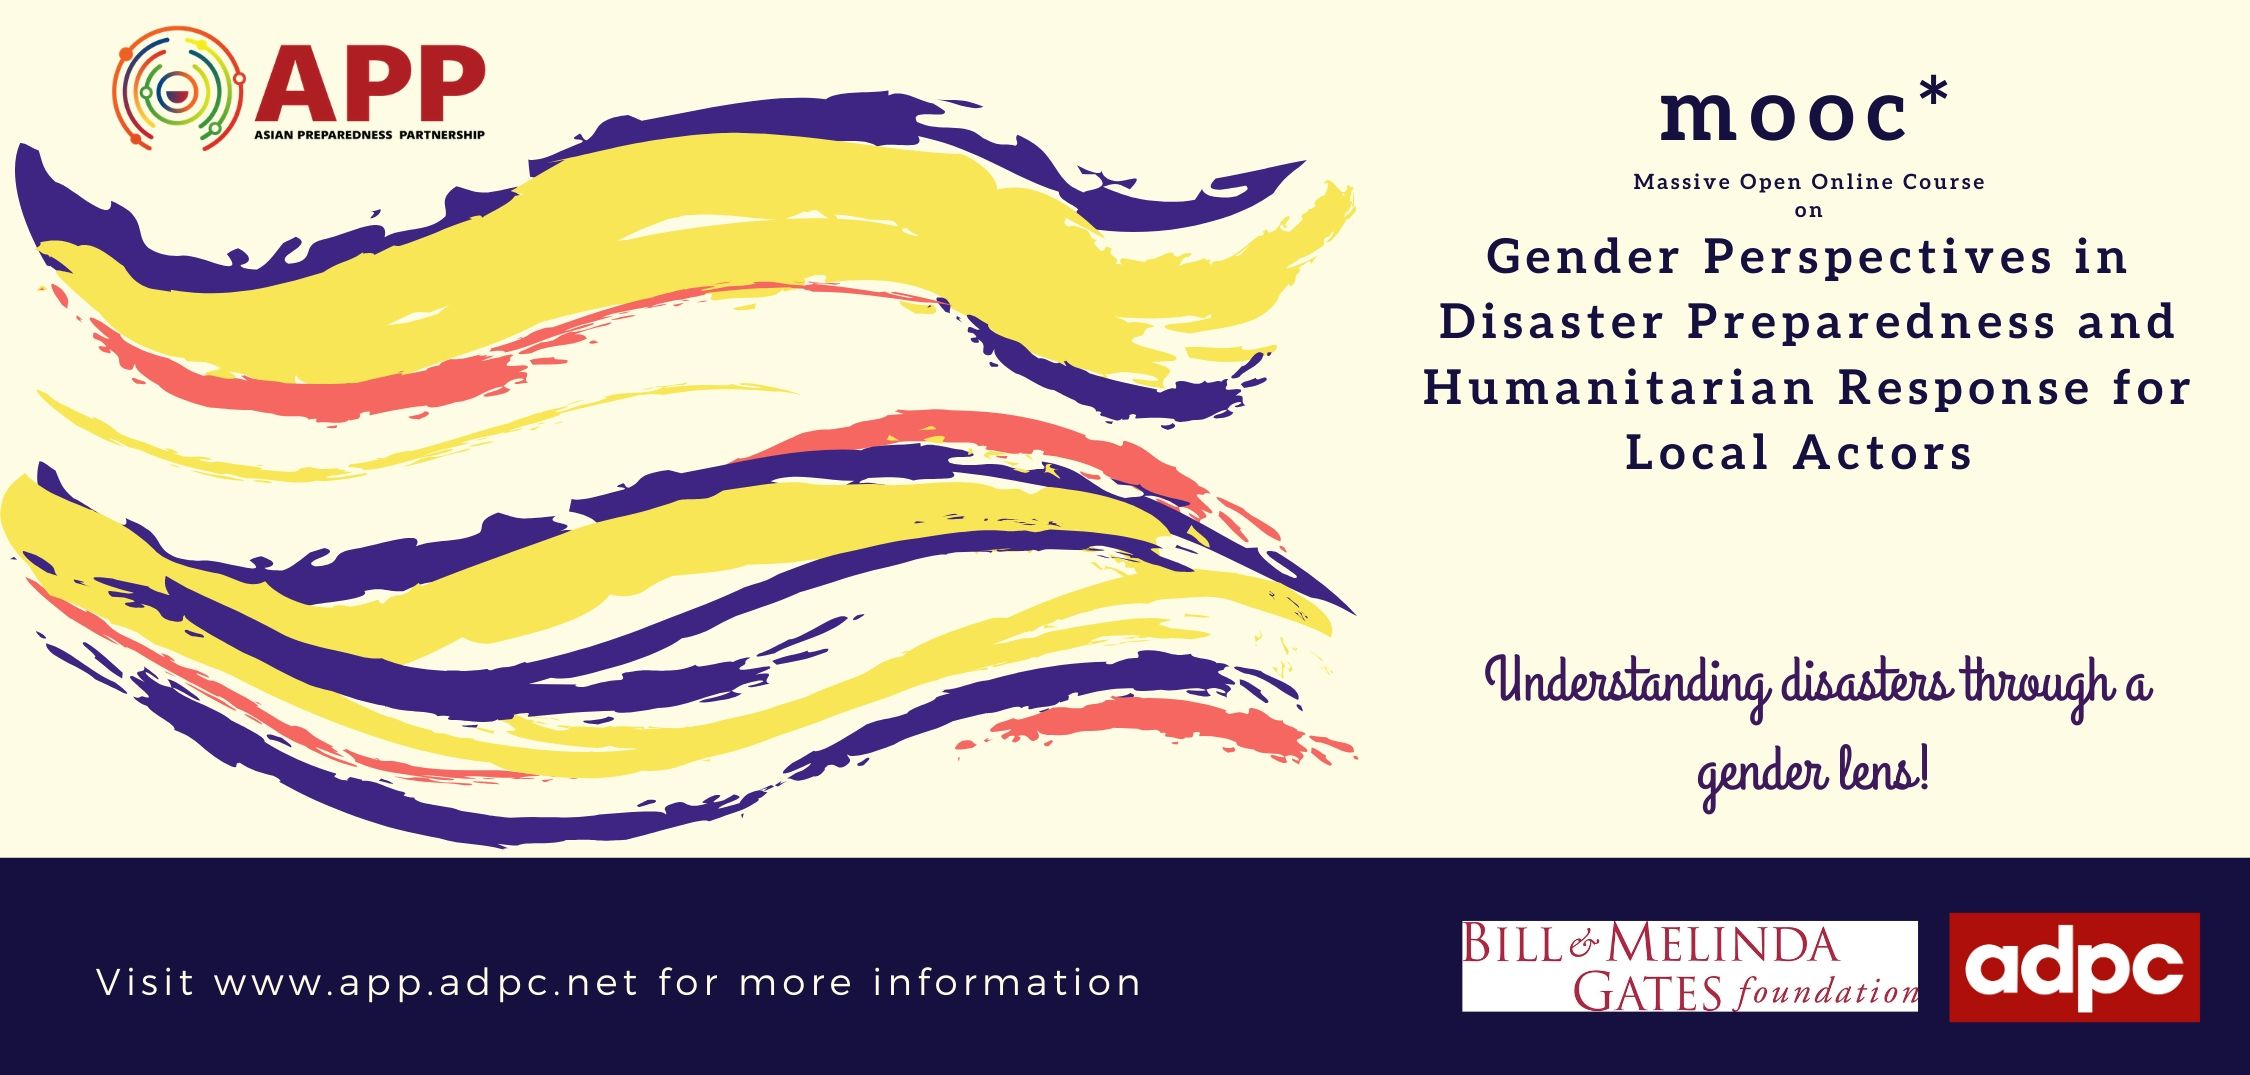 Gender Perspectives in Disaster Preparedness and Humanitarian Response for Local Actors APP-01